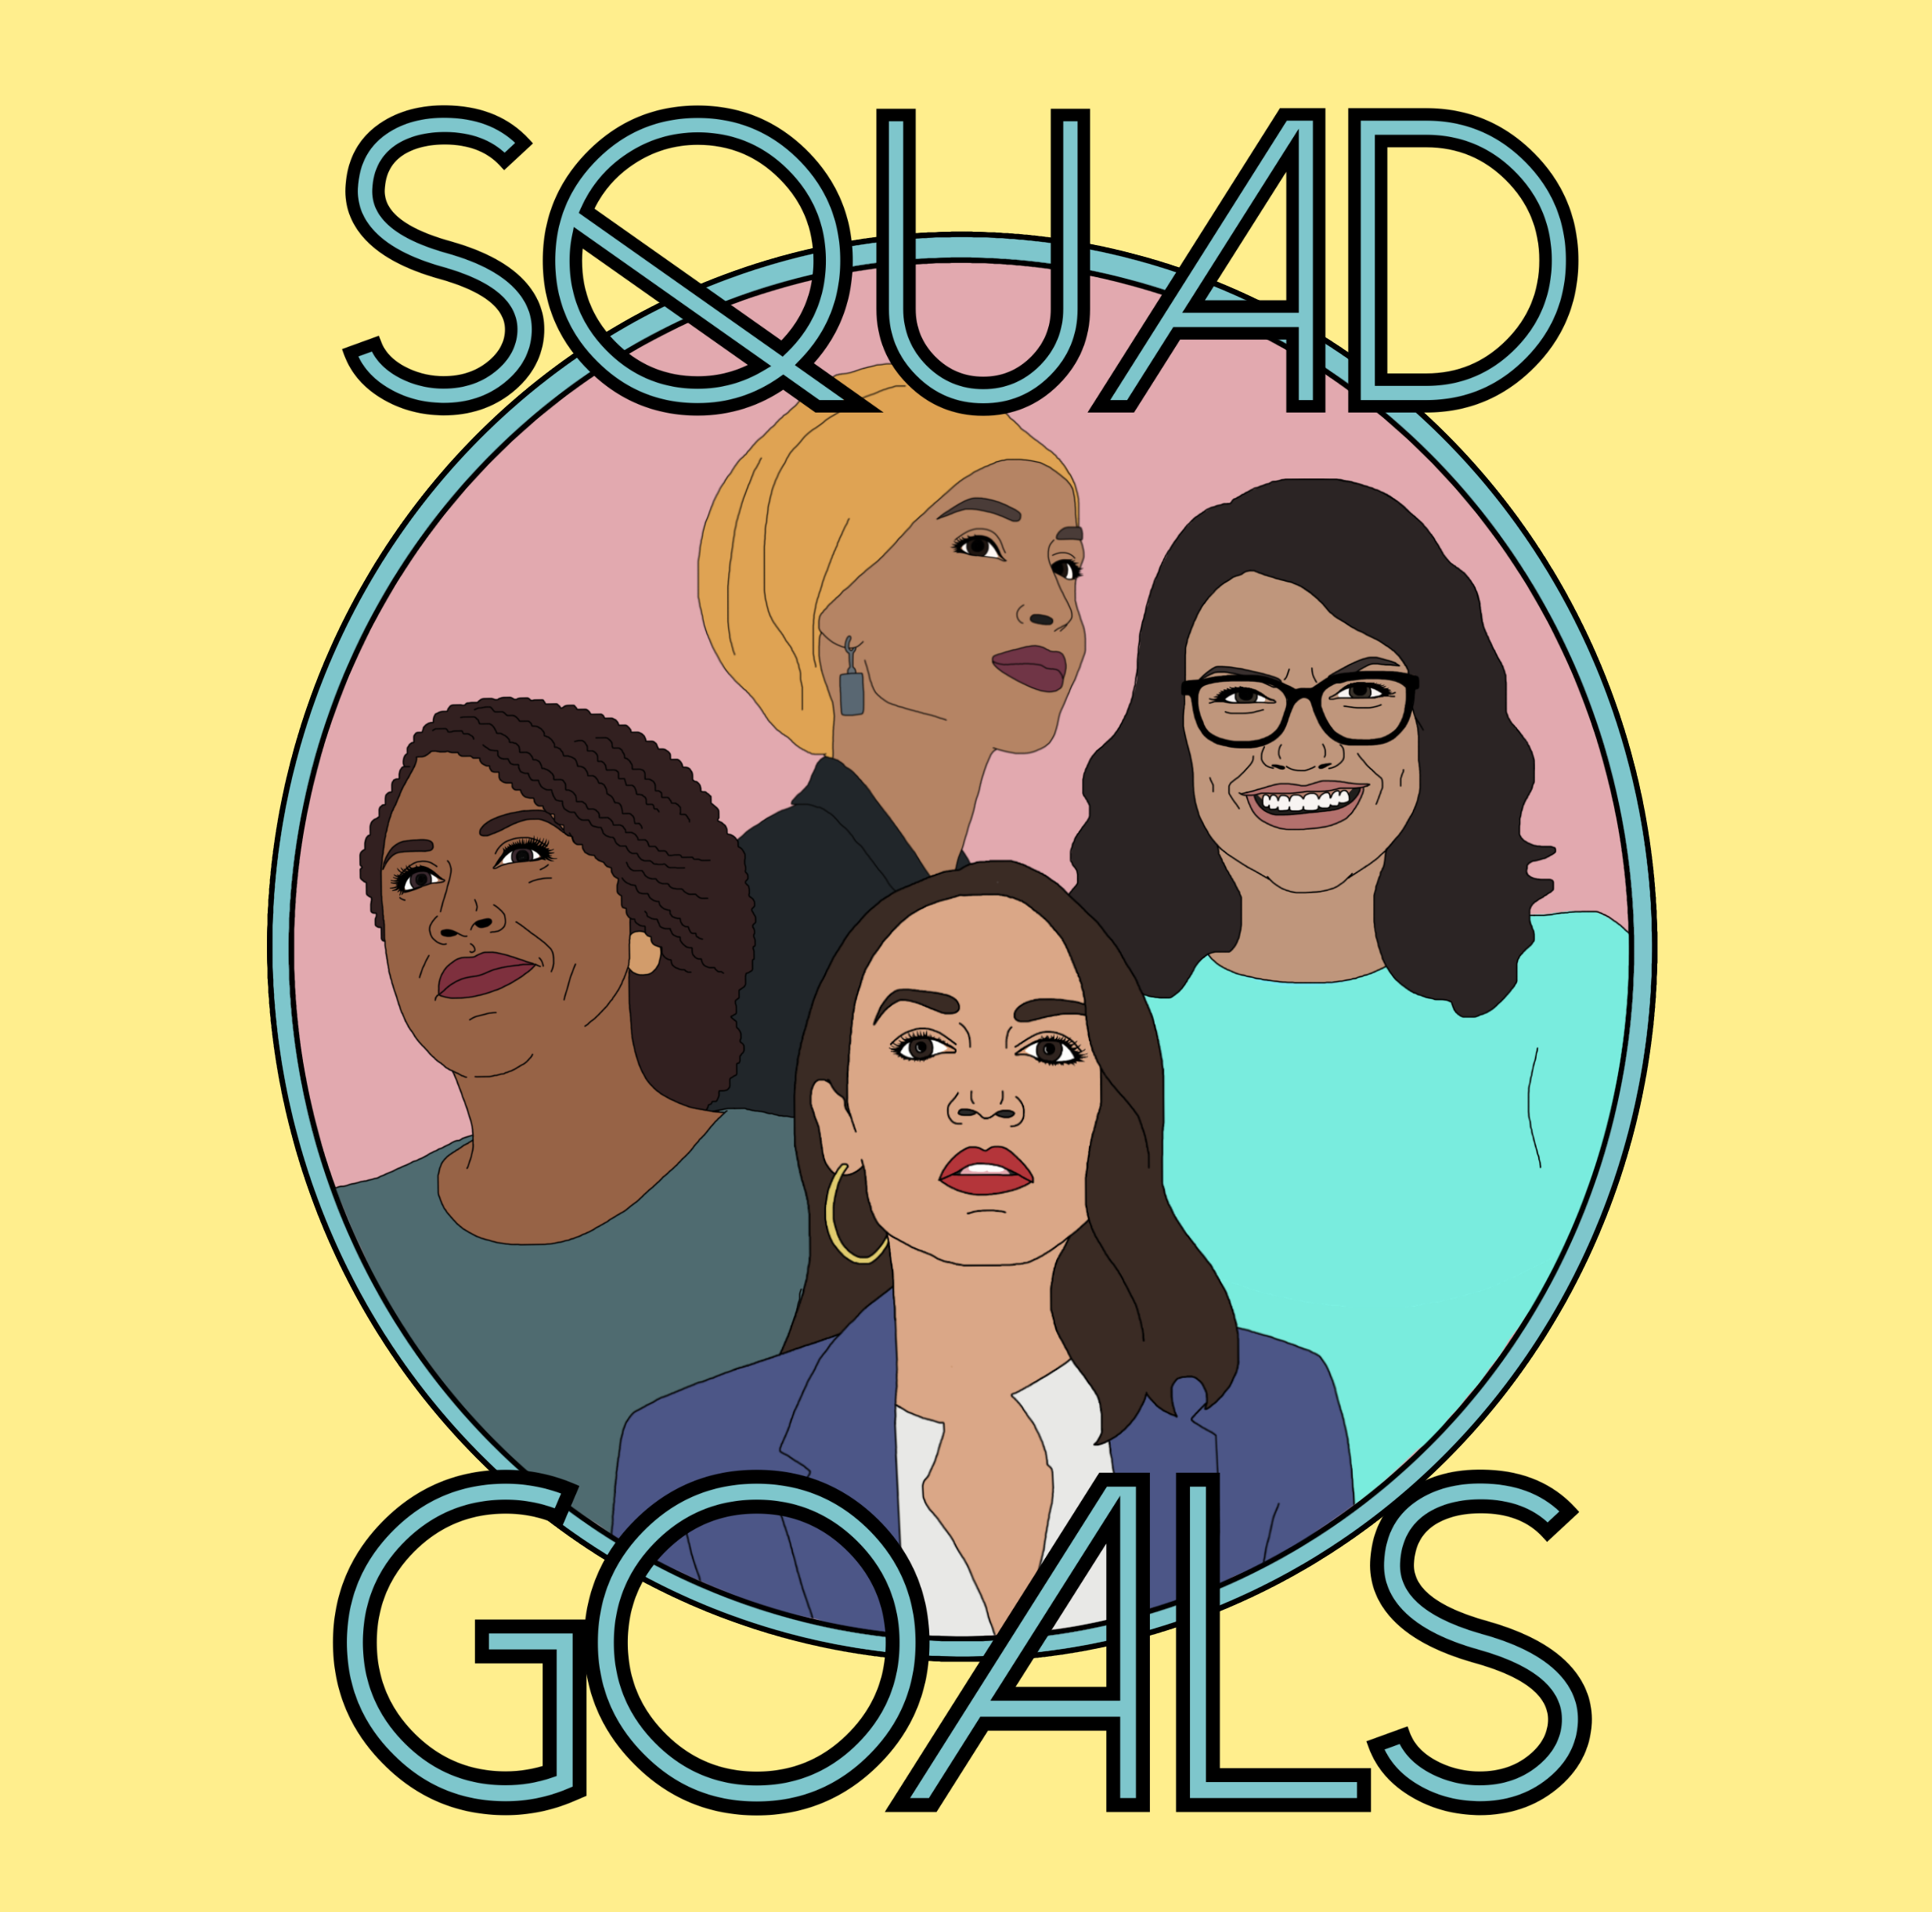 FREE Squad Goals Sticker...